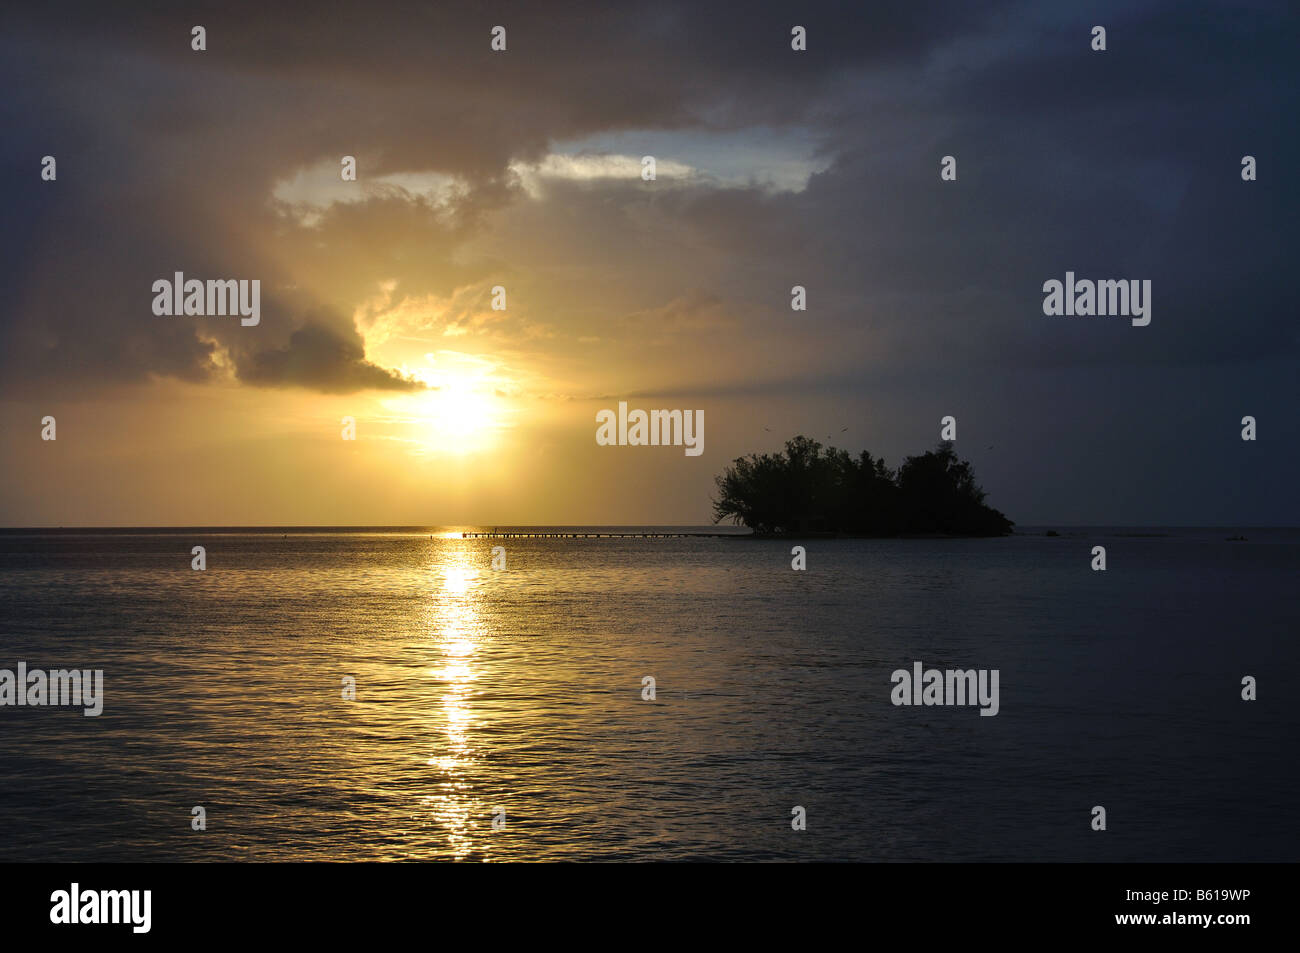 the sun sets on a small island off the west coast of puerto rico - Stock Image